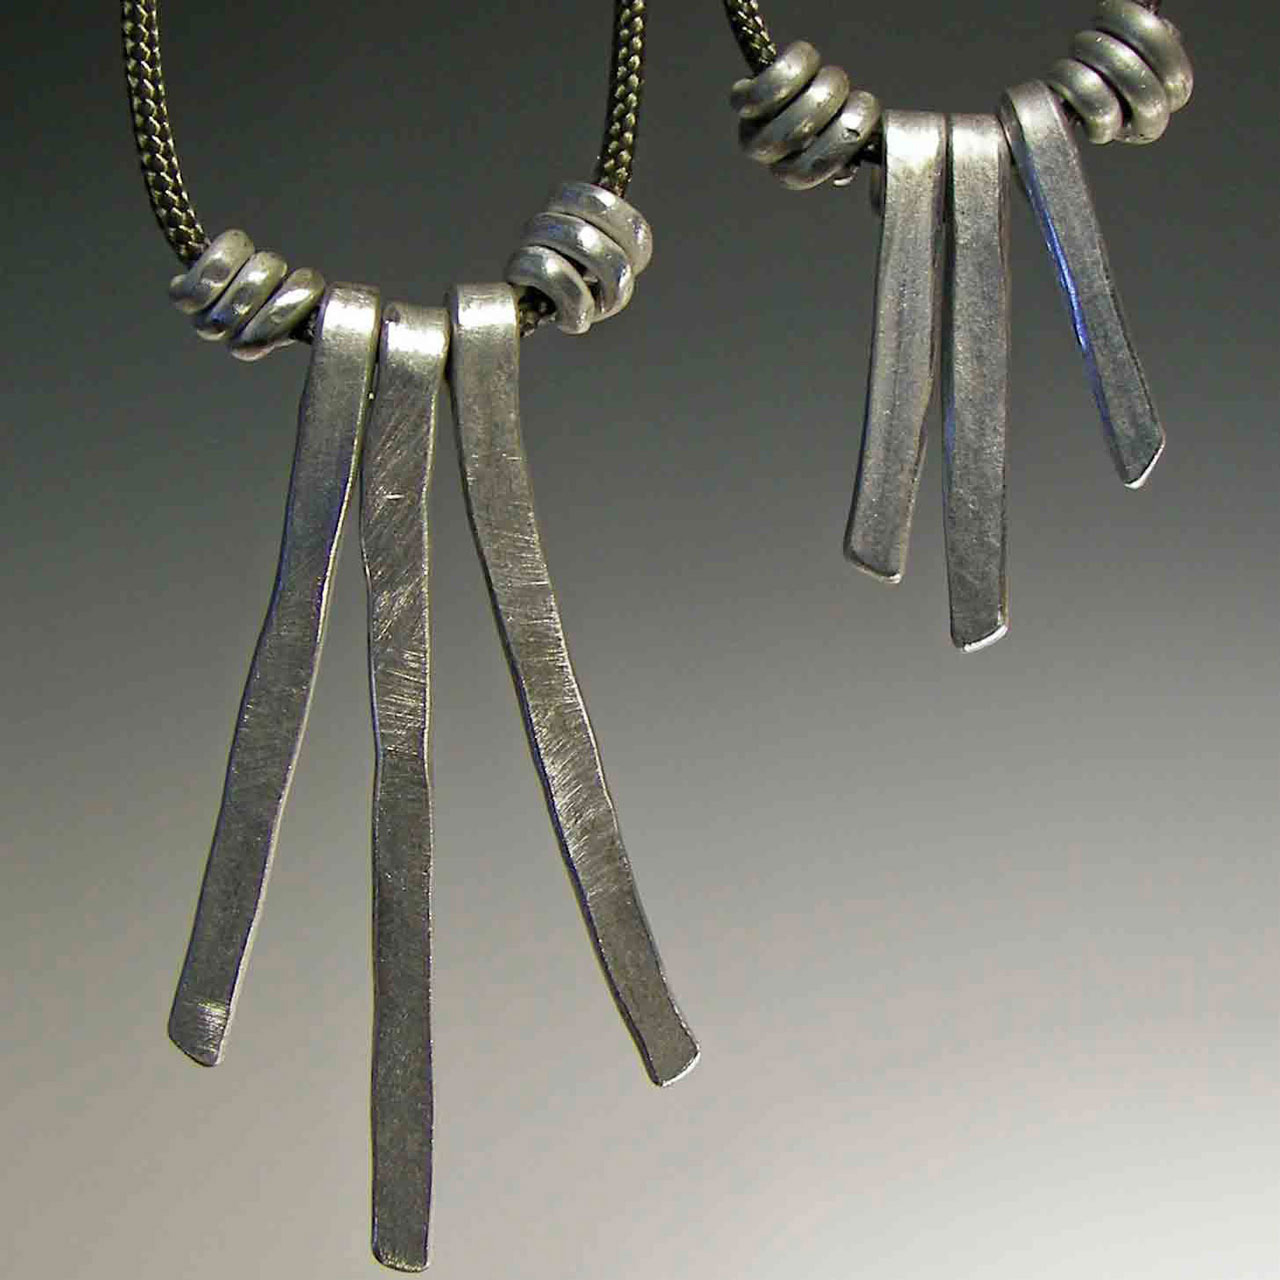 Aluminum Strands Earrings by Mckenna Hallett